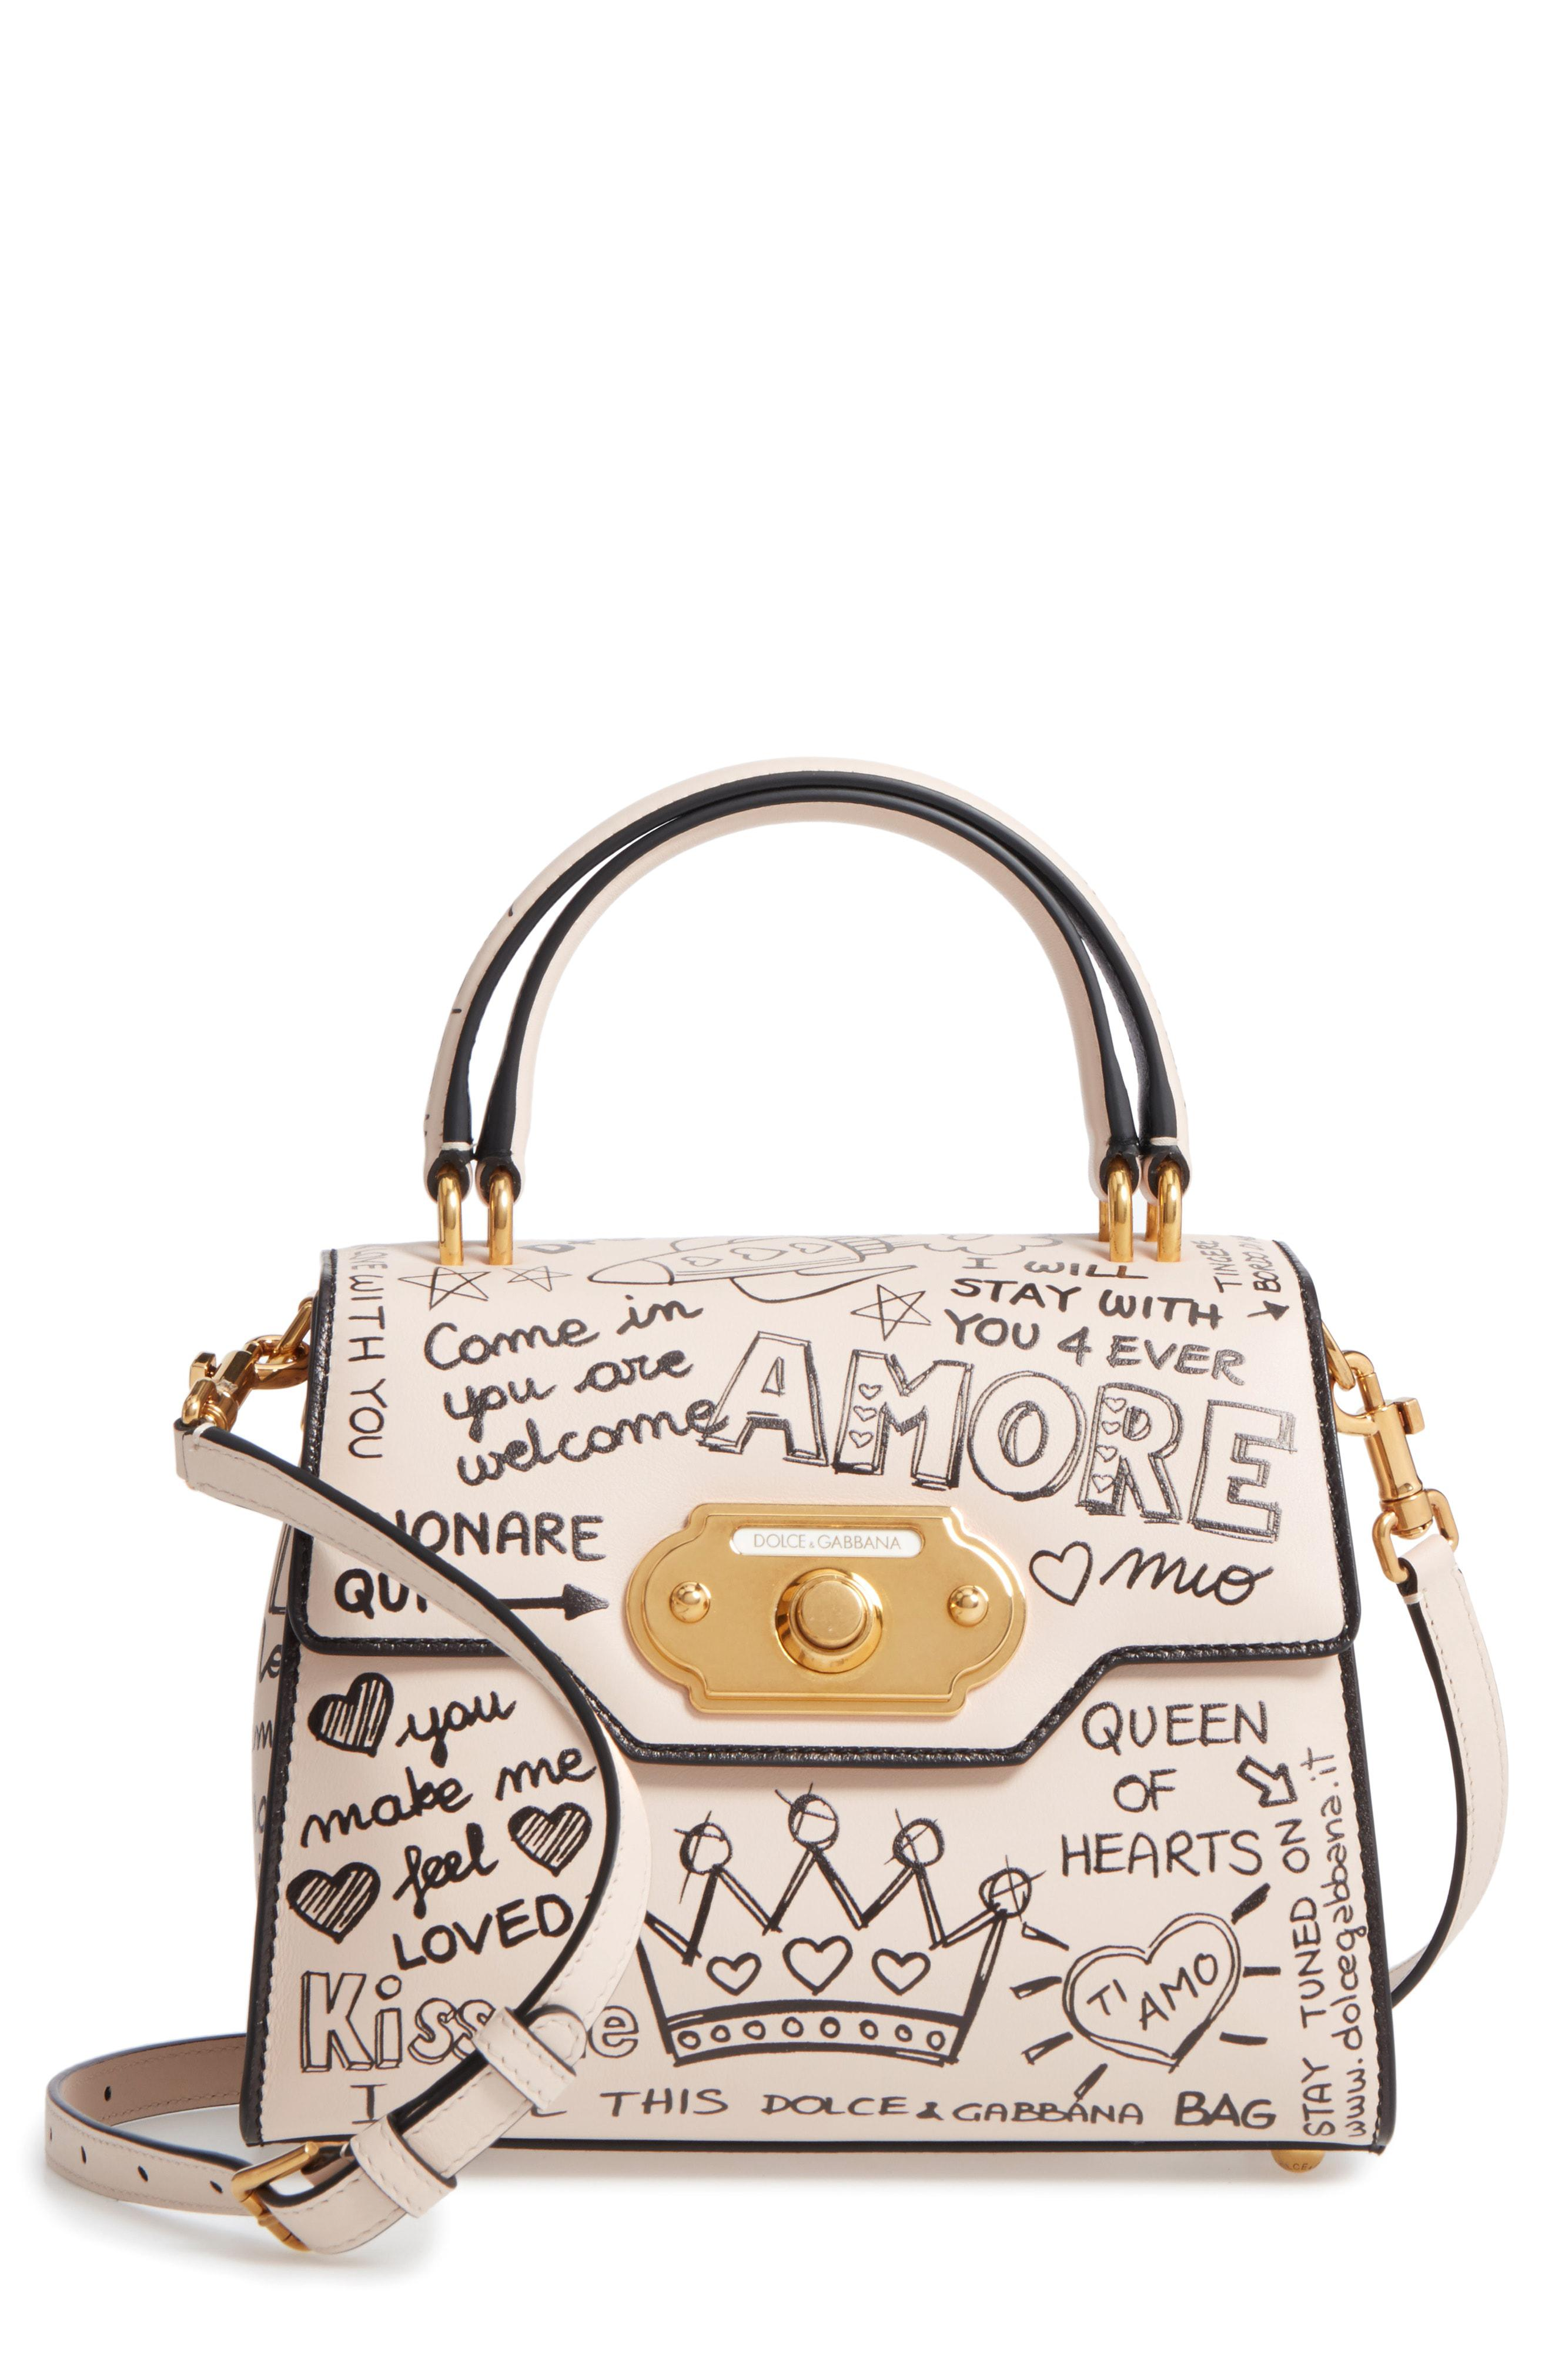 Lyst - Dolce   Gabbana Medium Welcome Leather Satchel in White ... f9877e8663